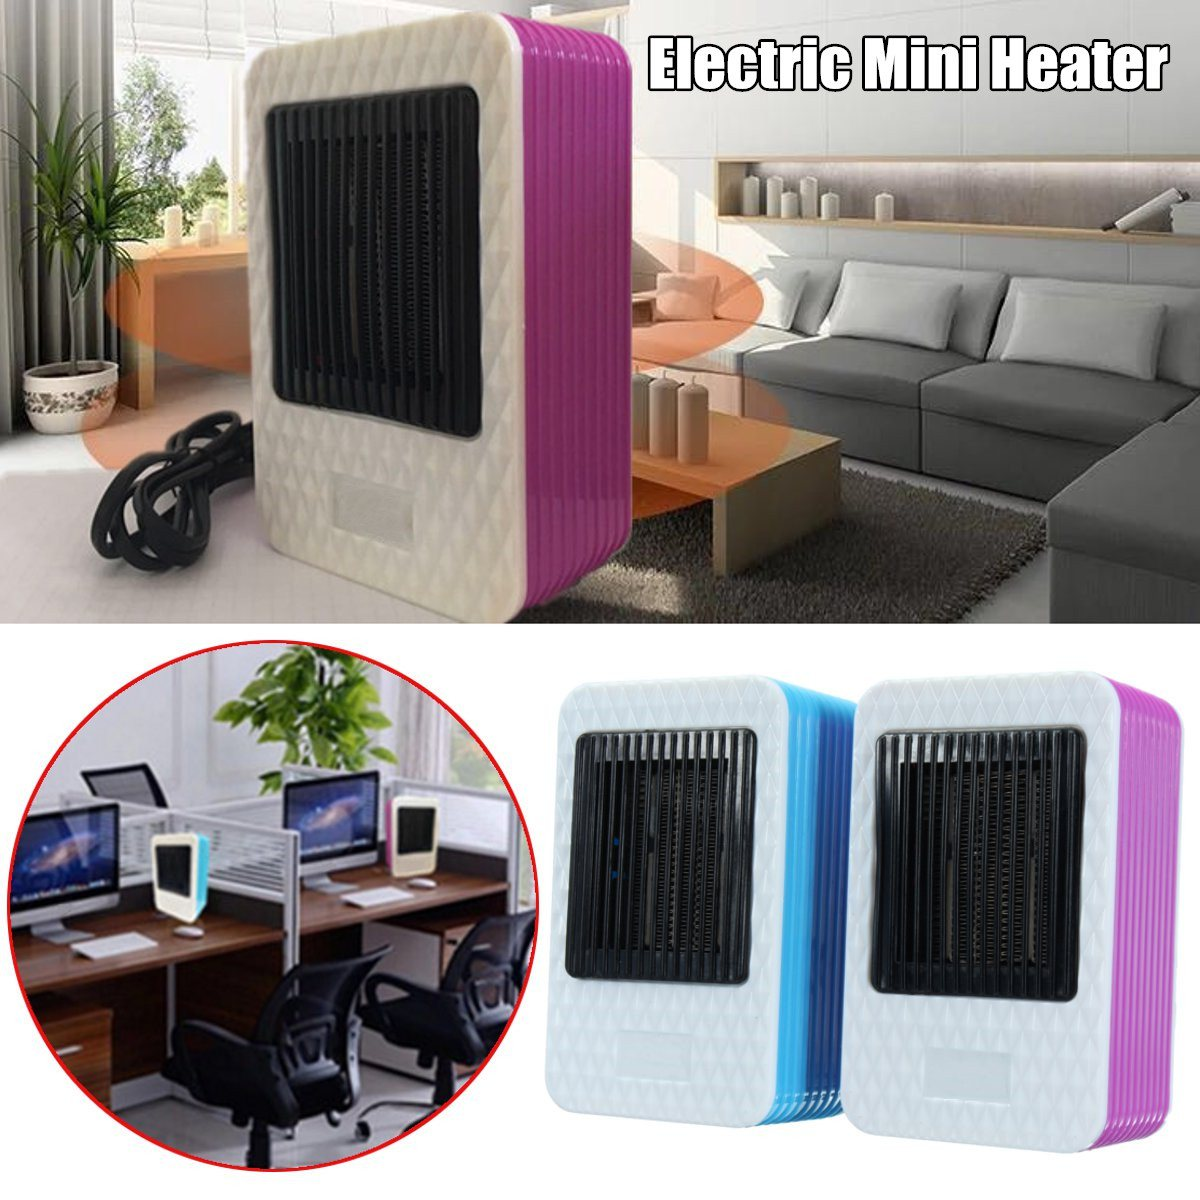 220V AC 500W Electric Air Heater Powerful Warm Blower Portable Mini Fast Heater Fan Stove Radiator Room Warmer warm air blower heating elements fan heater electric heat pipe warming air machine tubular element unit heater parts